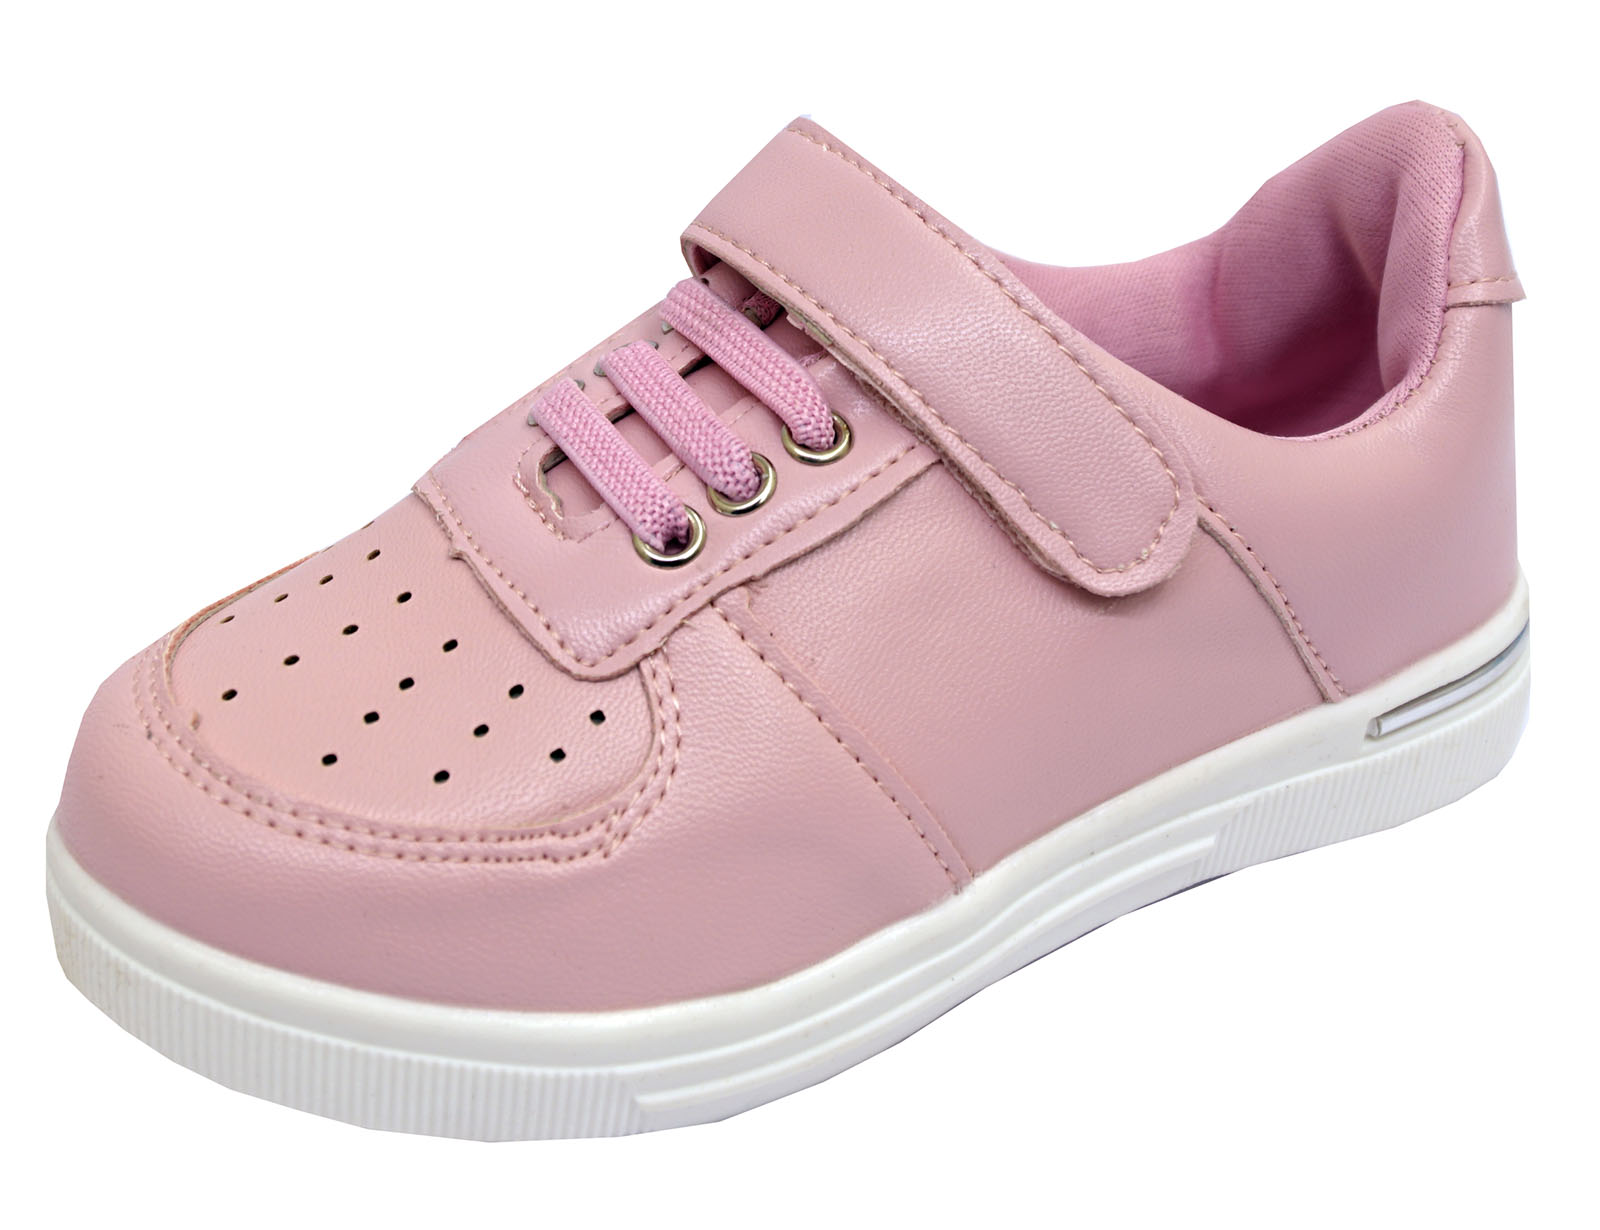 childrens pink casual trainers plimsoll p e